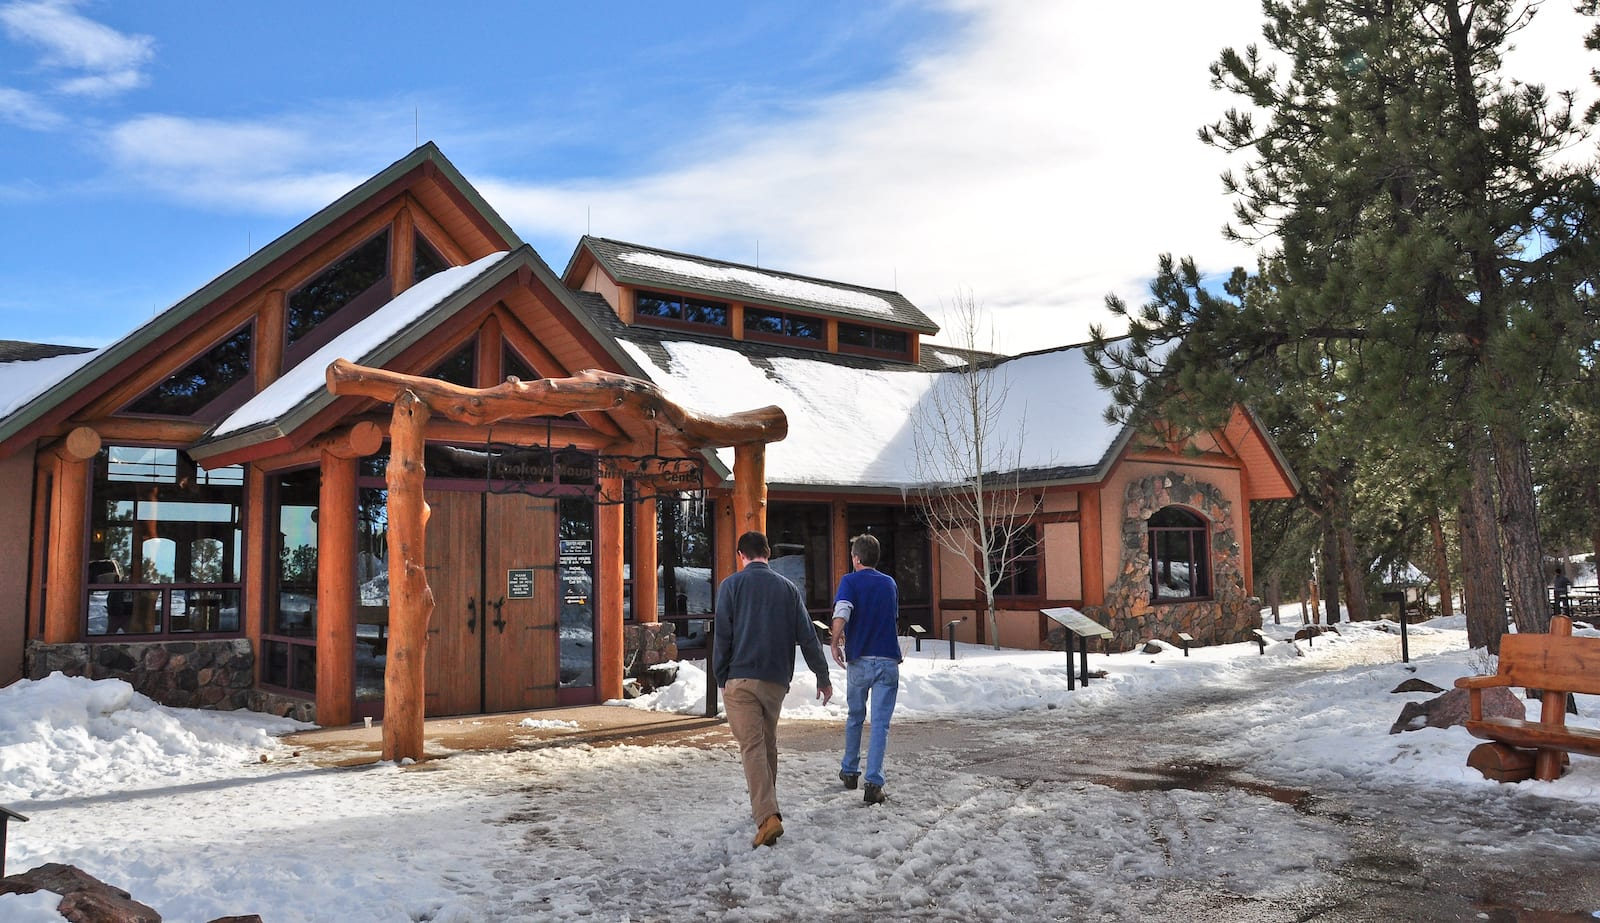 Lookout Mountain Visitor Center Golden CO